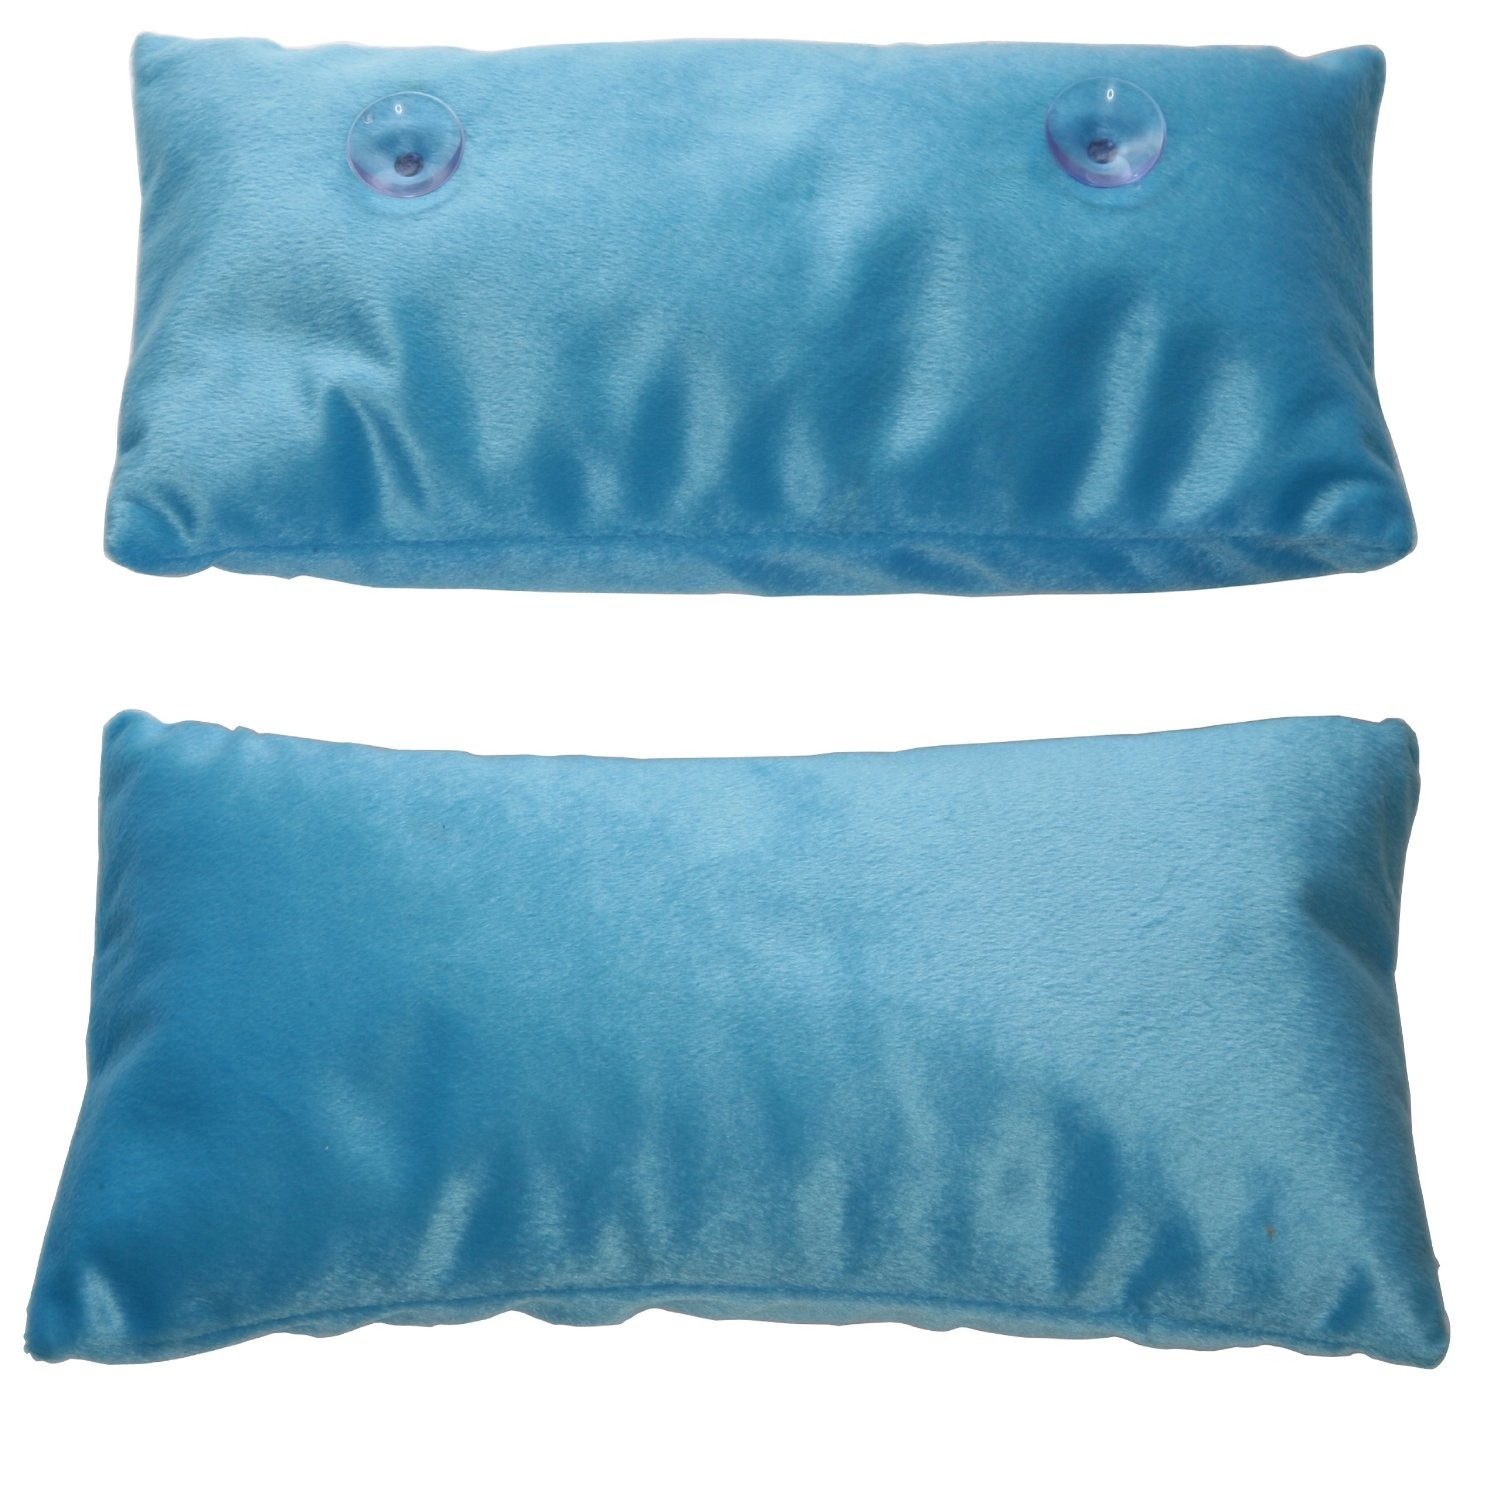 Deluxe Comfort Microbead Spa Pillow, Oversized - Hot Tub Head And ...